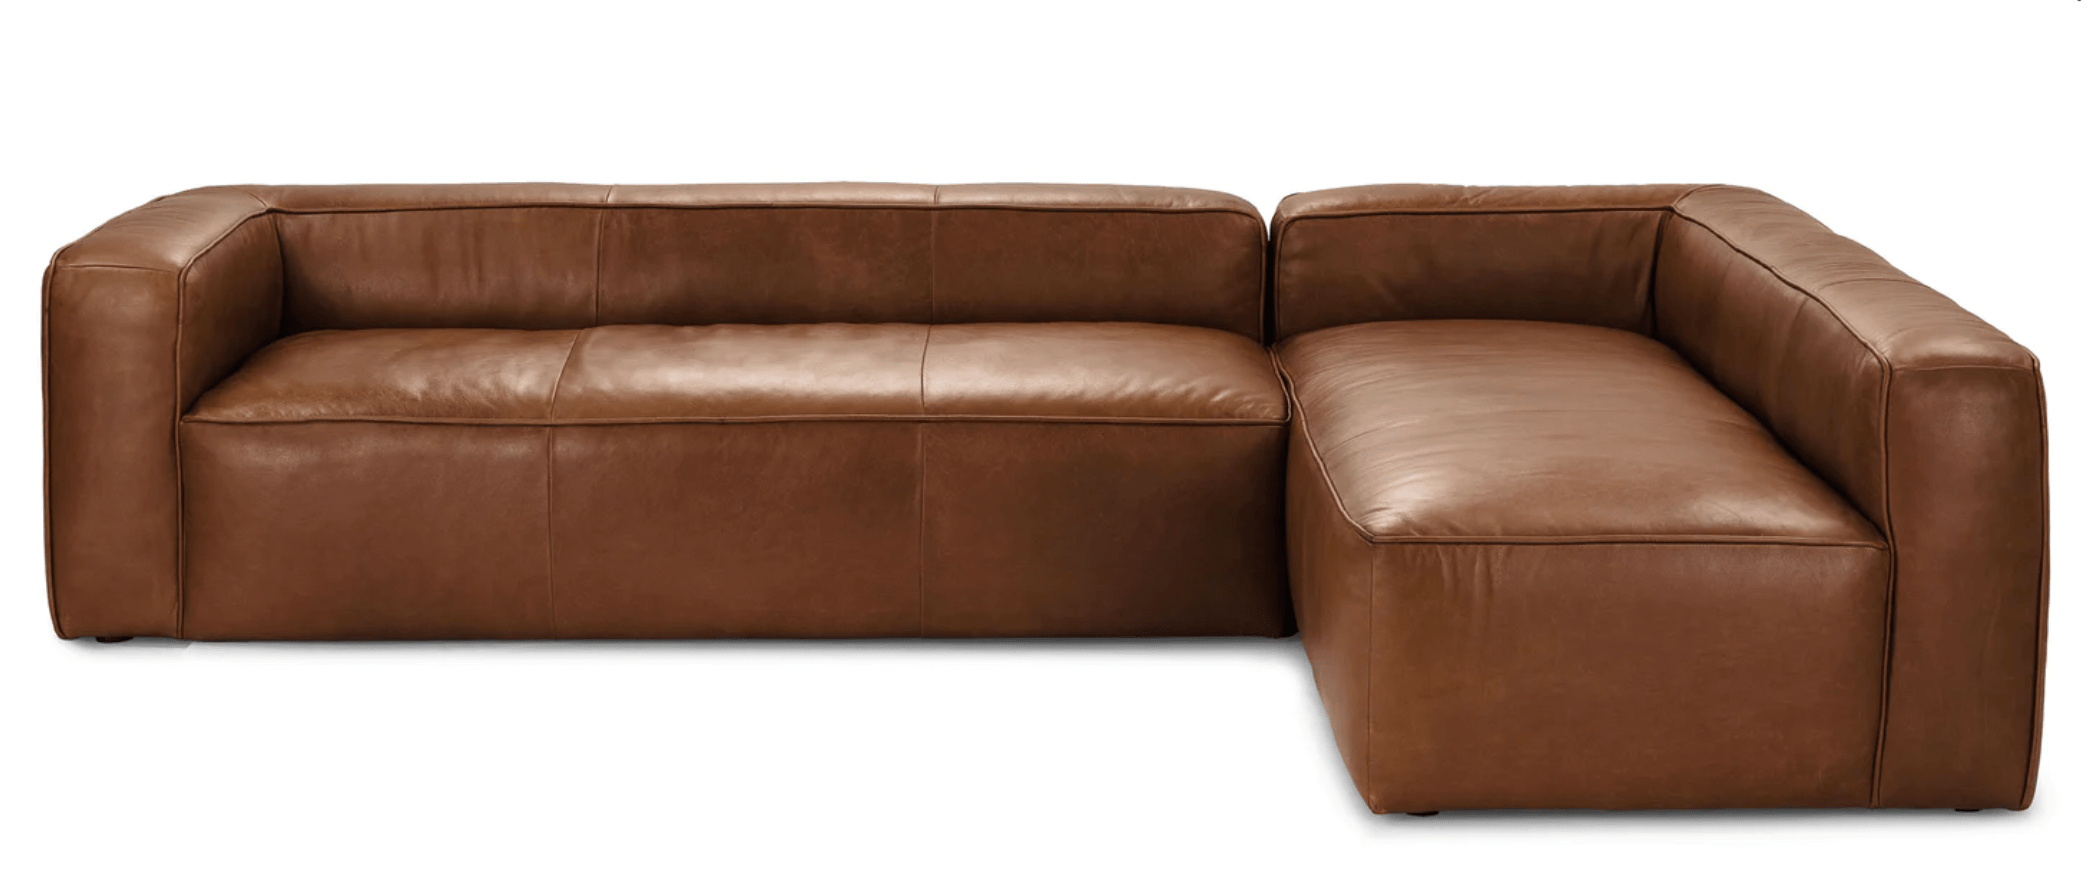 Article Mello Sectional in Taos Tan Product Photo